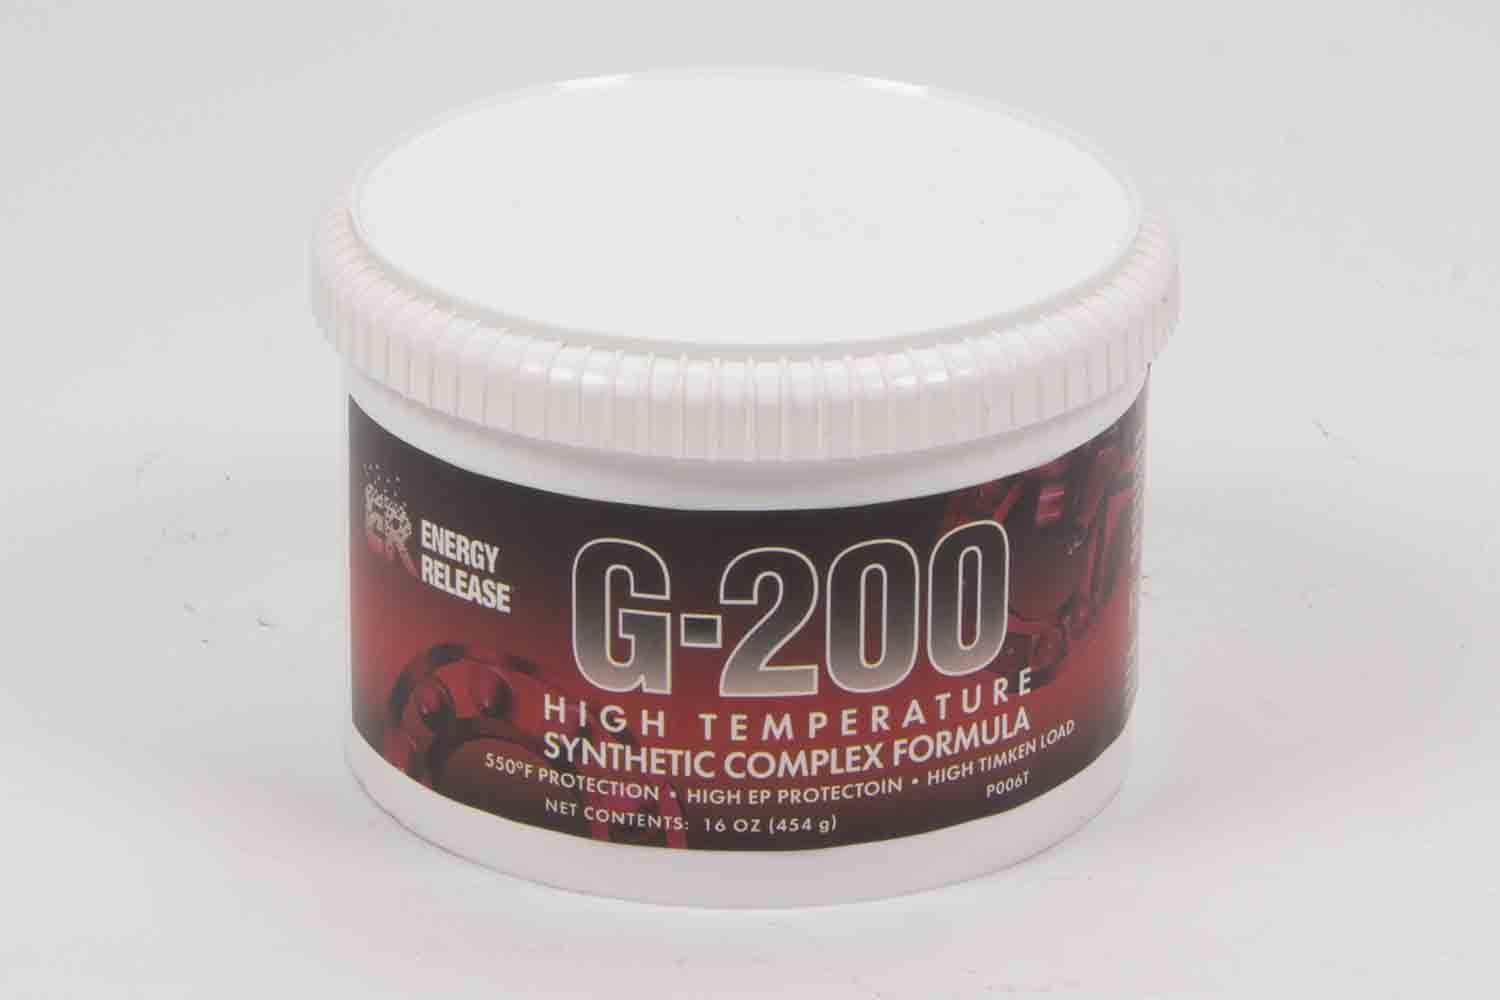 Energy Release P006T Grease, G-200 High Temperature, Synthetic, 16.0 oz Tub, Each